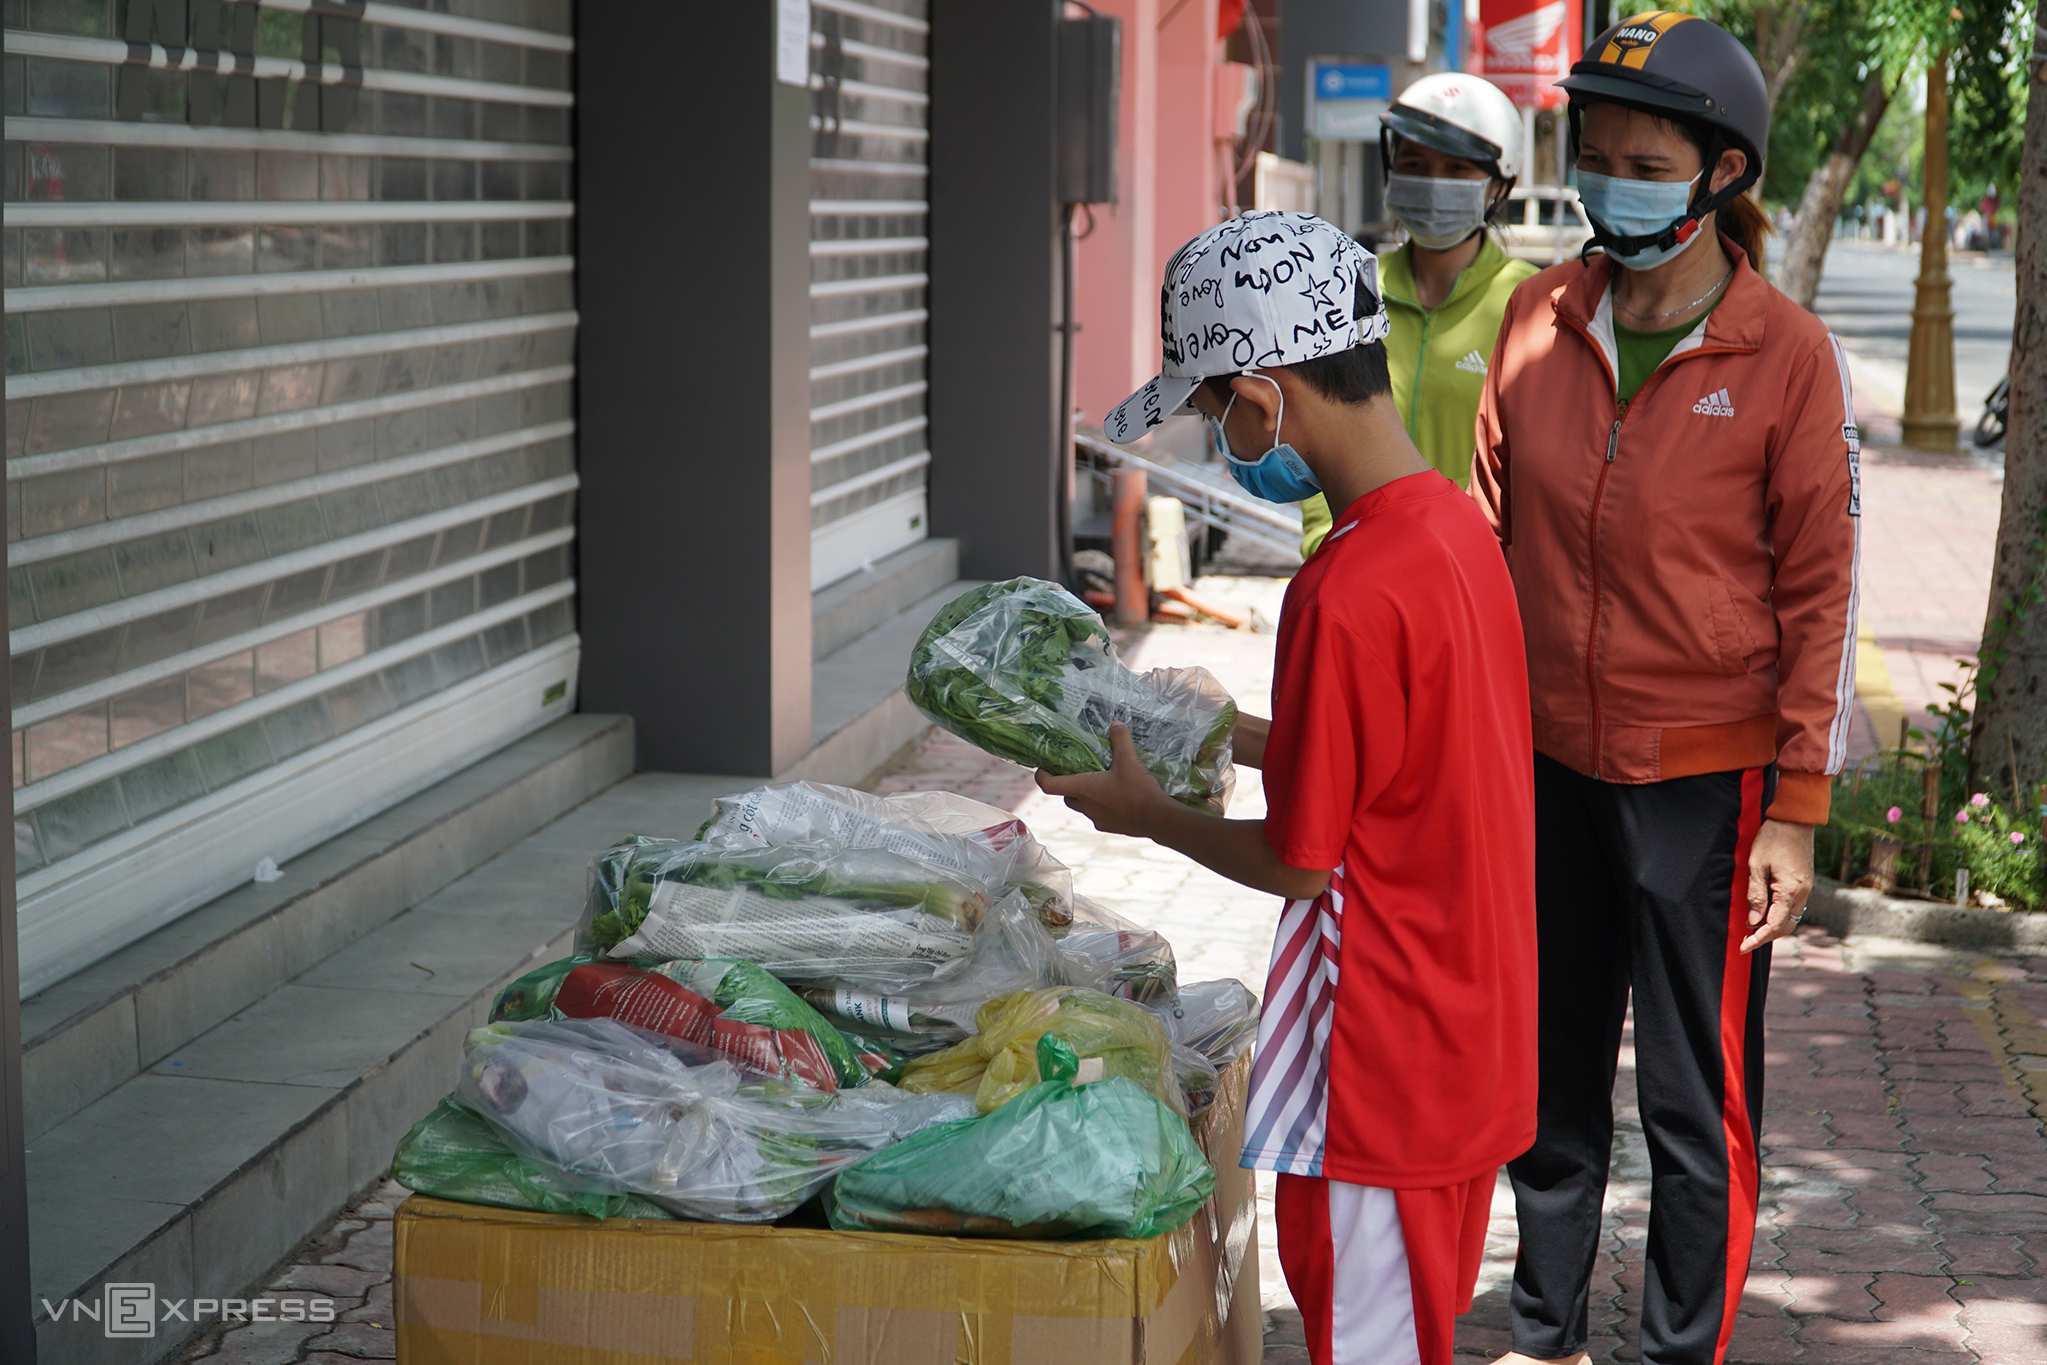 Social distancing measures empty famed southern Vietnam beach town